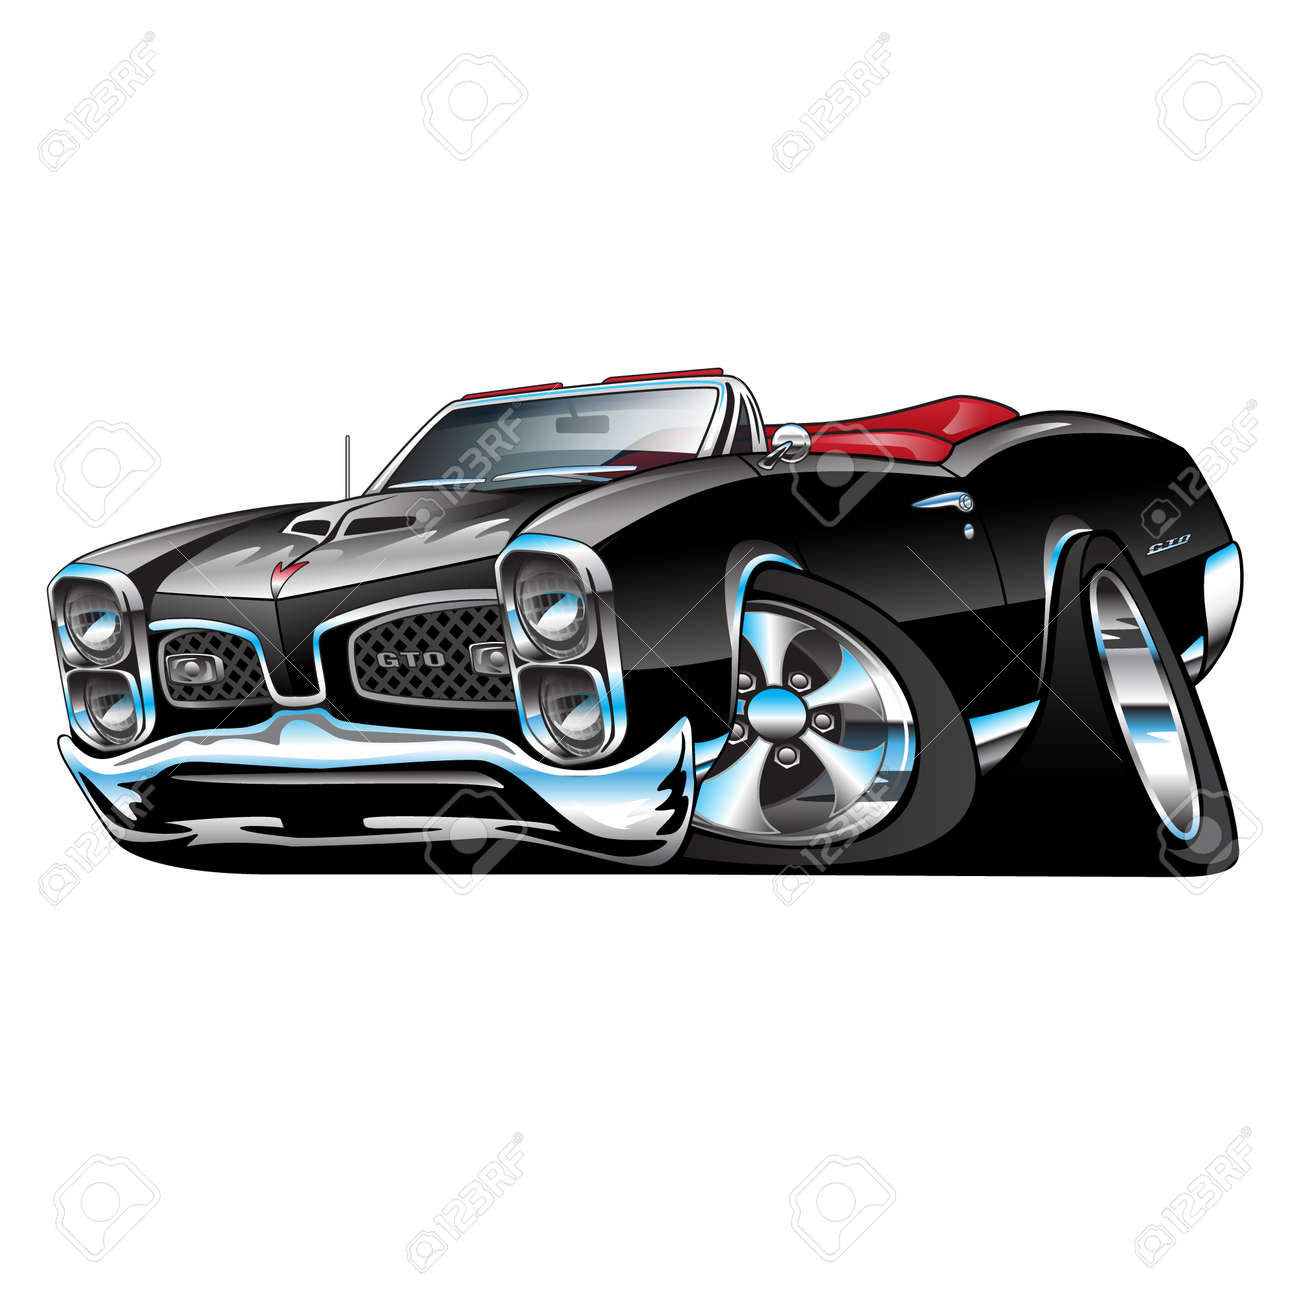 American Muscle Car Black Convertible Cartoon Illustration